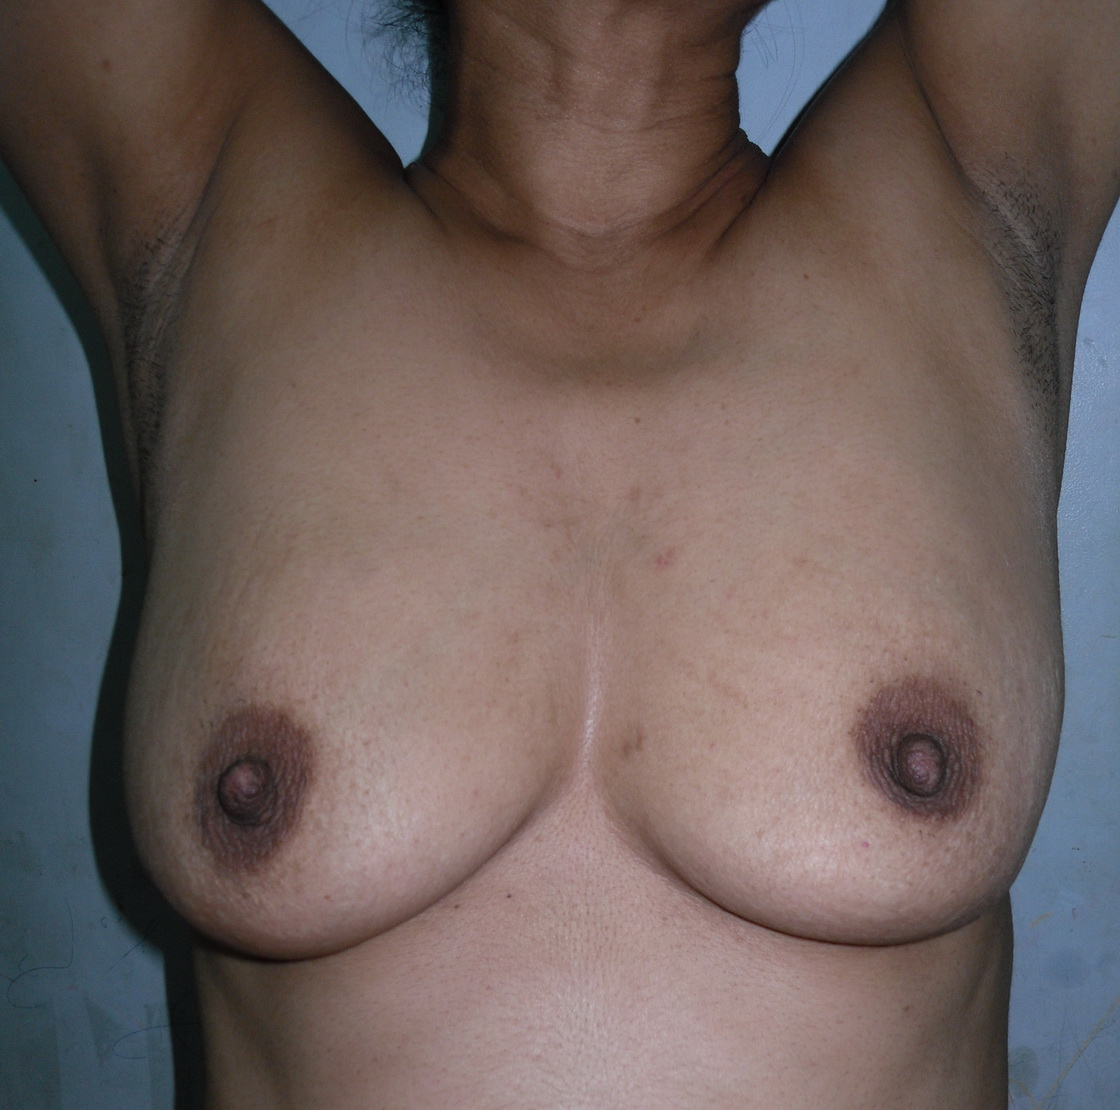 Mature Indian Girlfriends Nice Tits Pics - Real Indian Gfs-5465